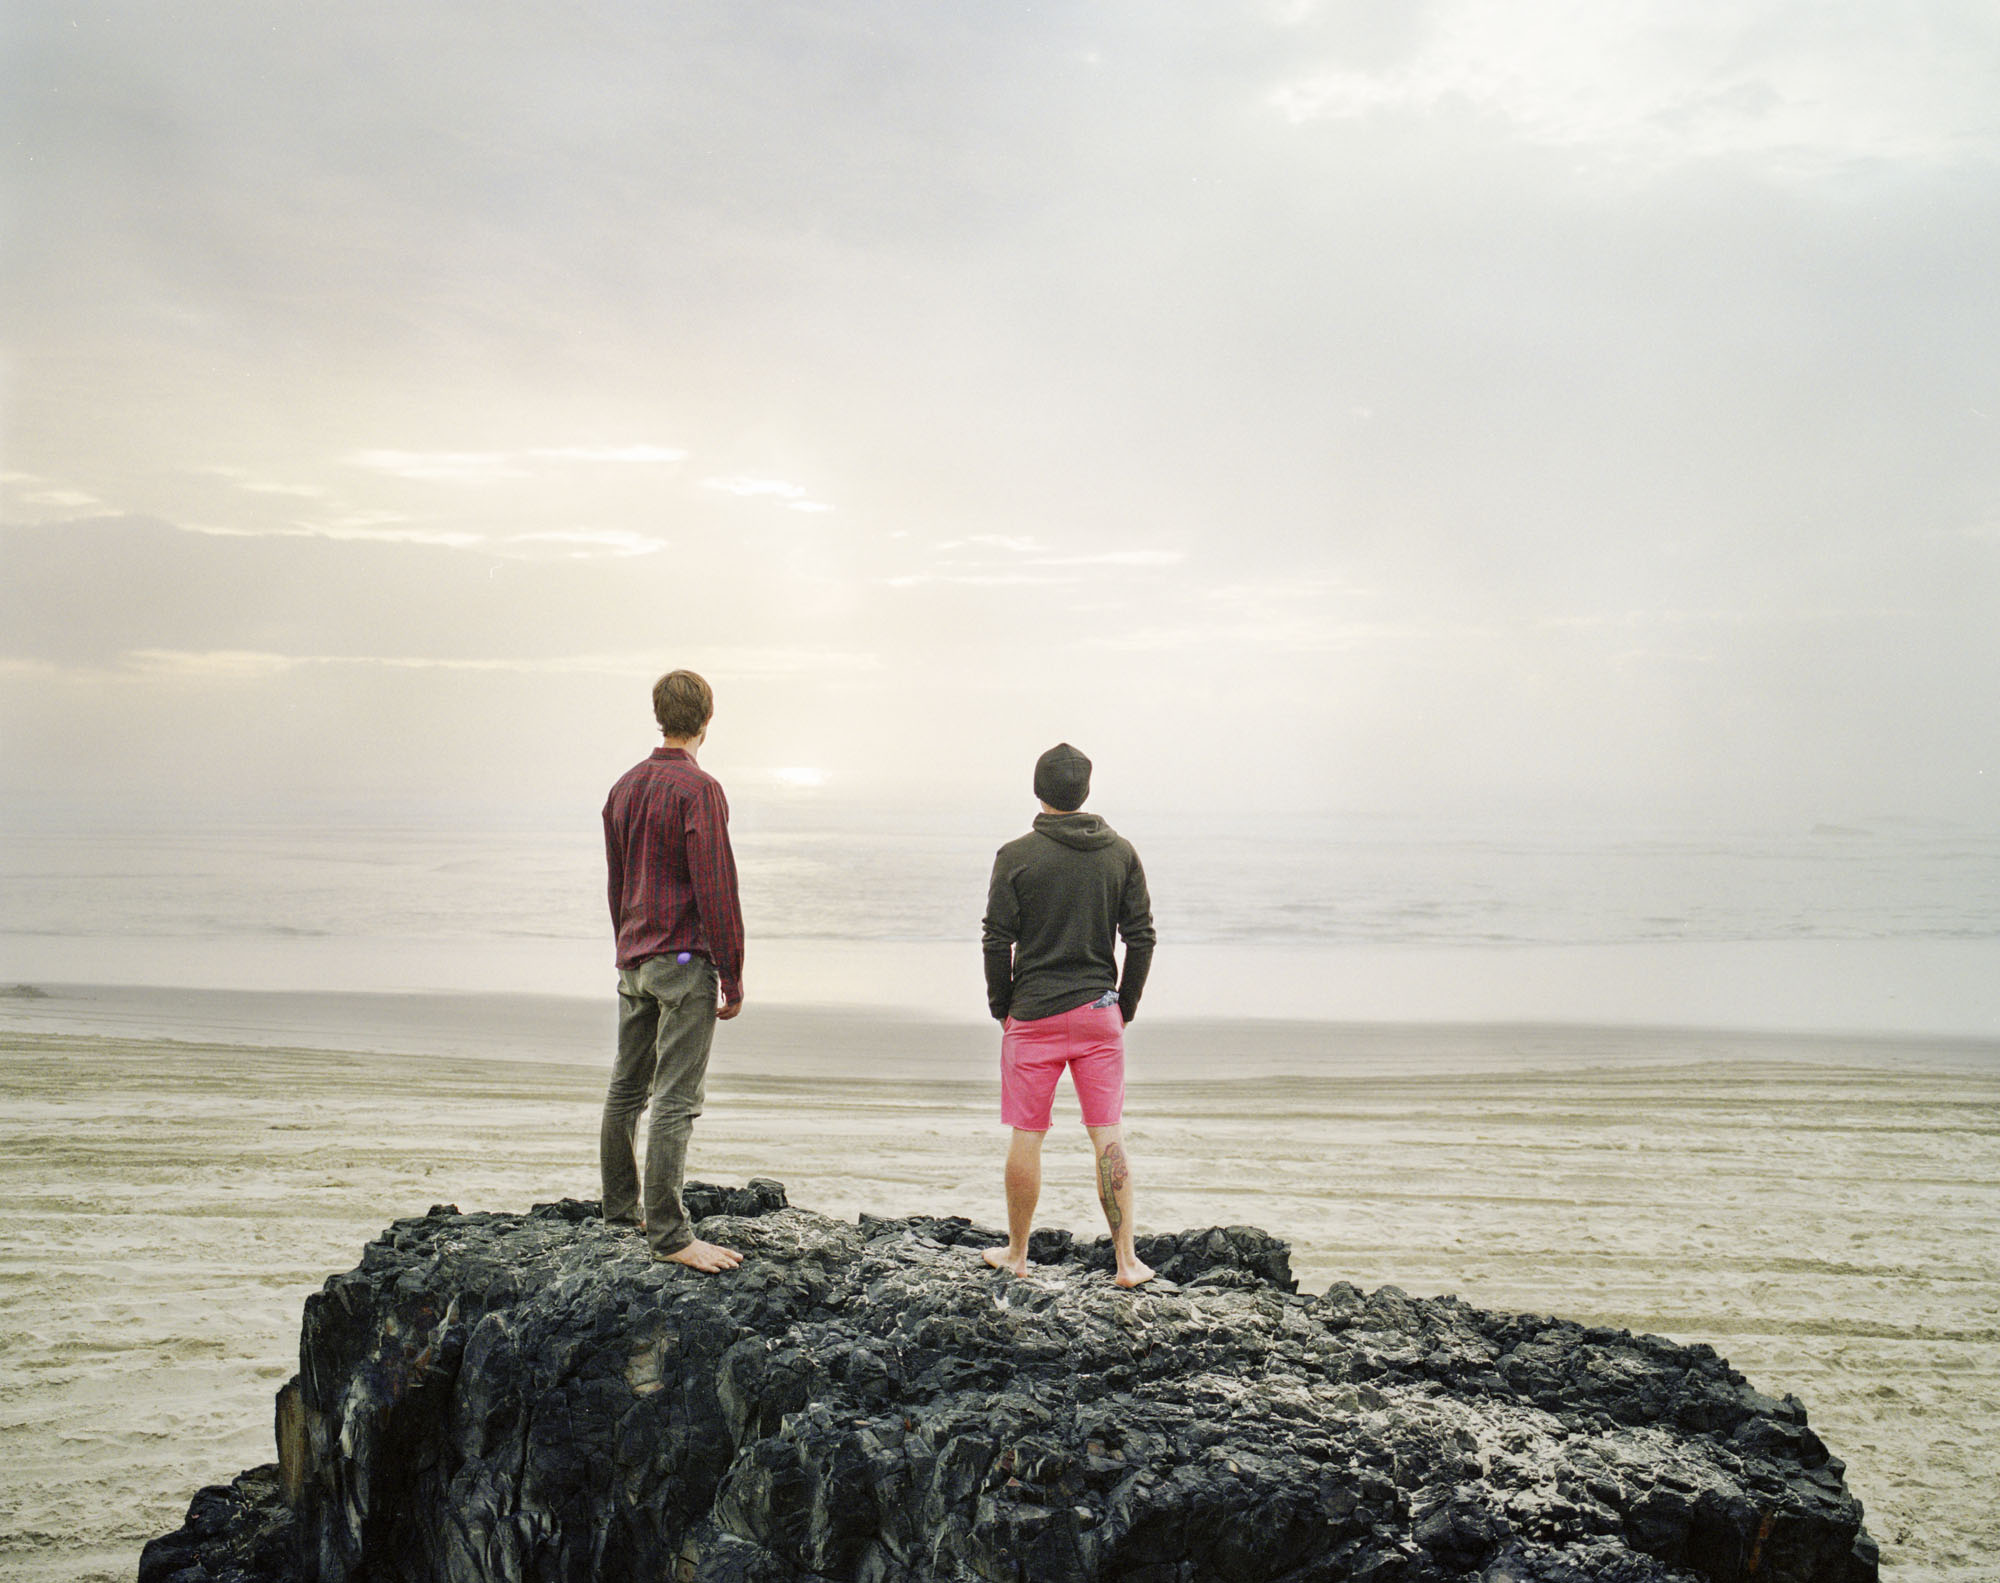 Two men standing on rock